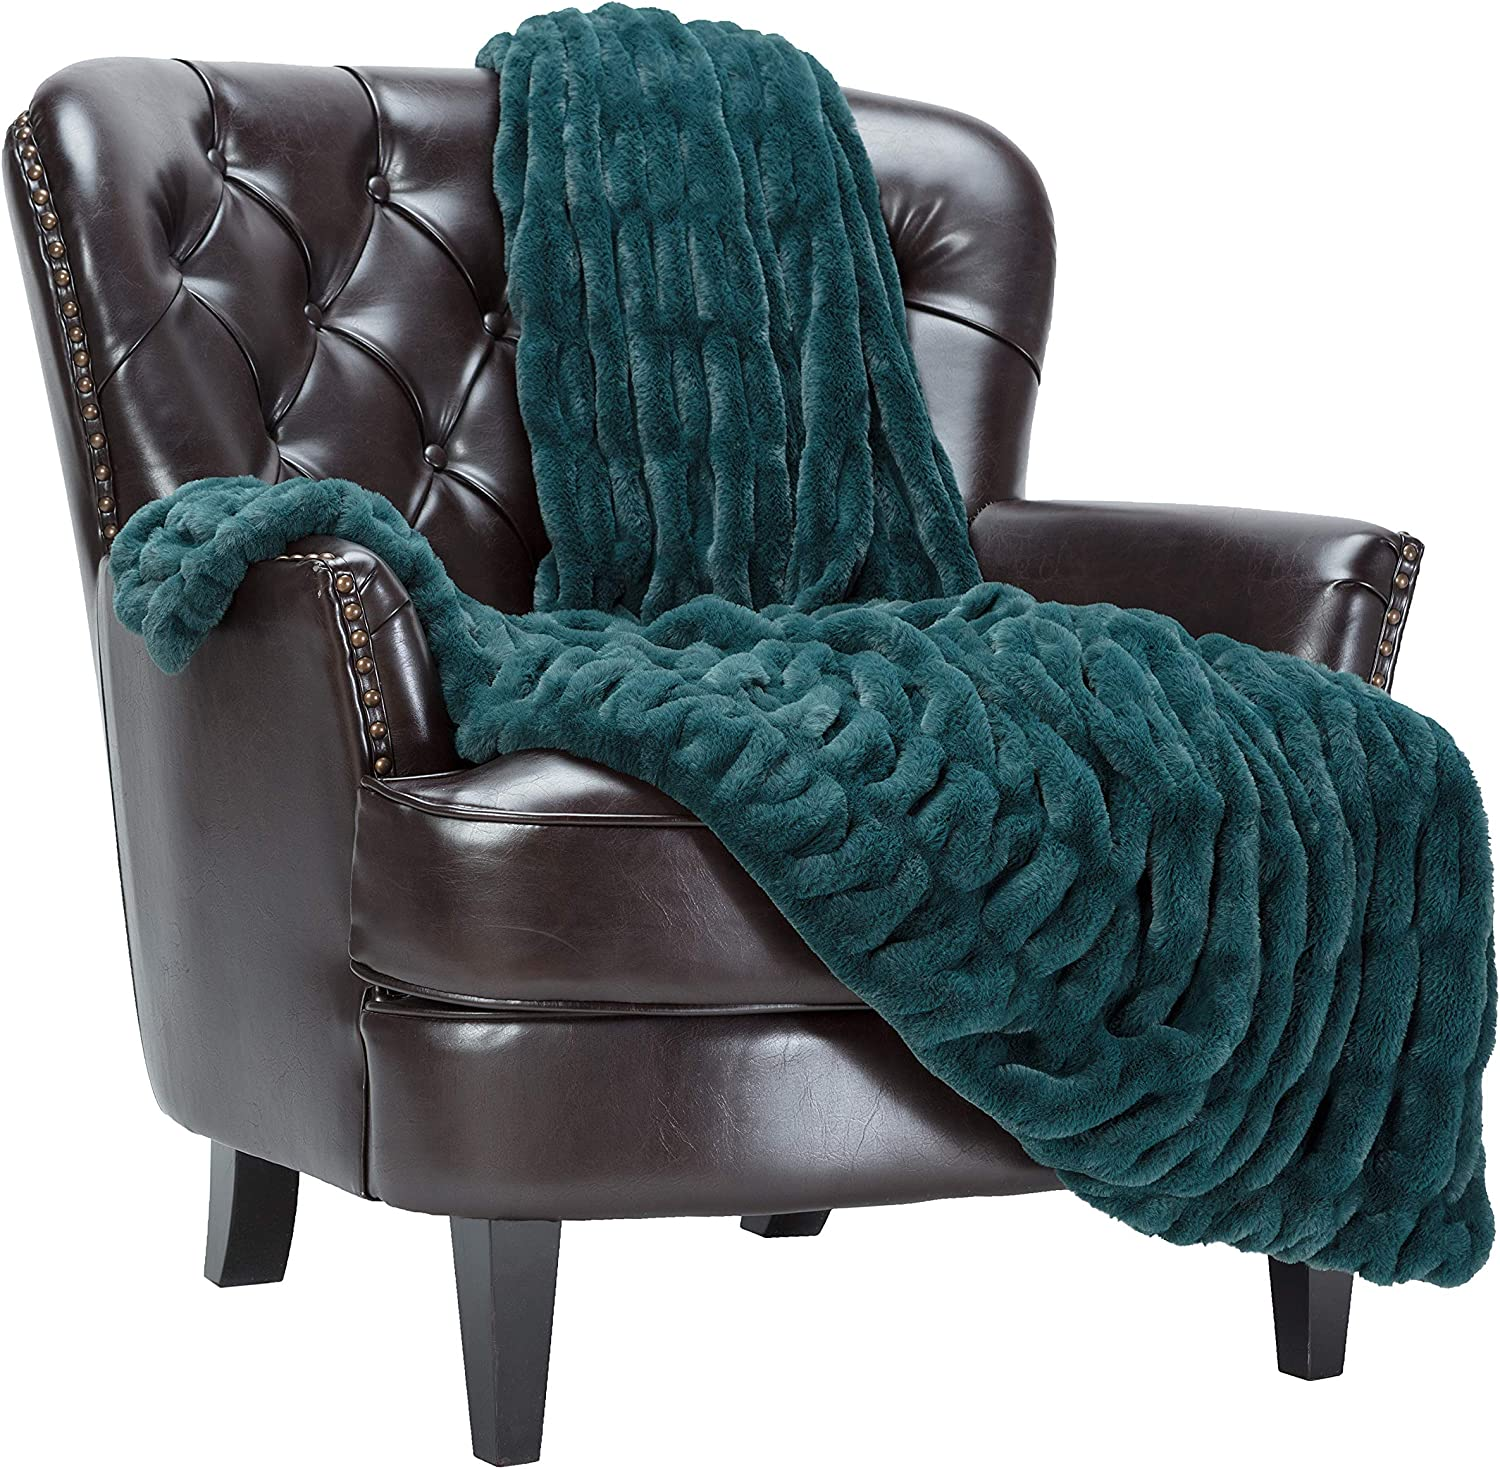 Chanasya Ruched Luxurious Online limited product Soft Faux Fur Pl Throw - Fuzzy Blanket Sale special price